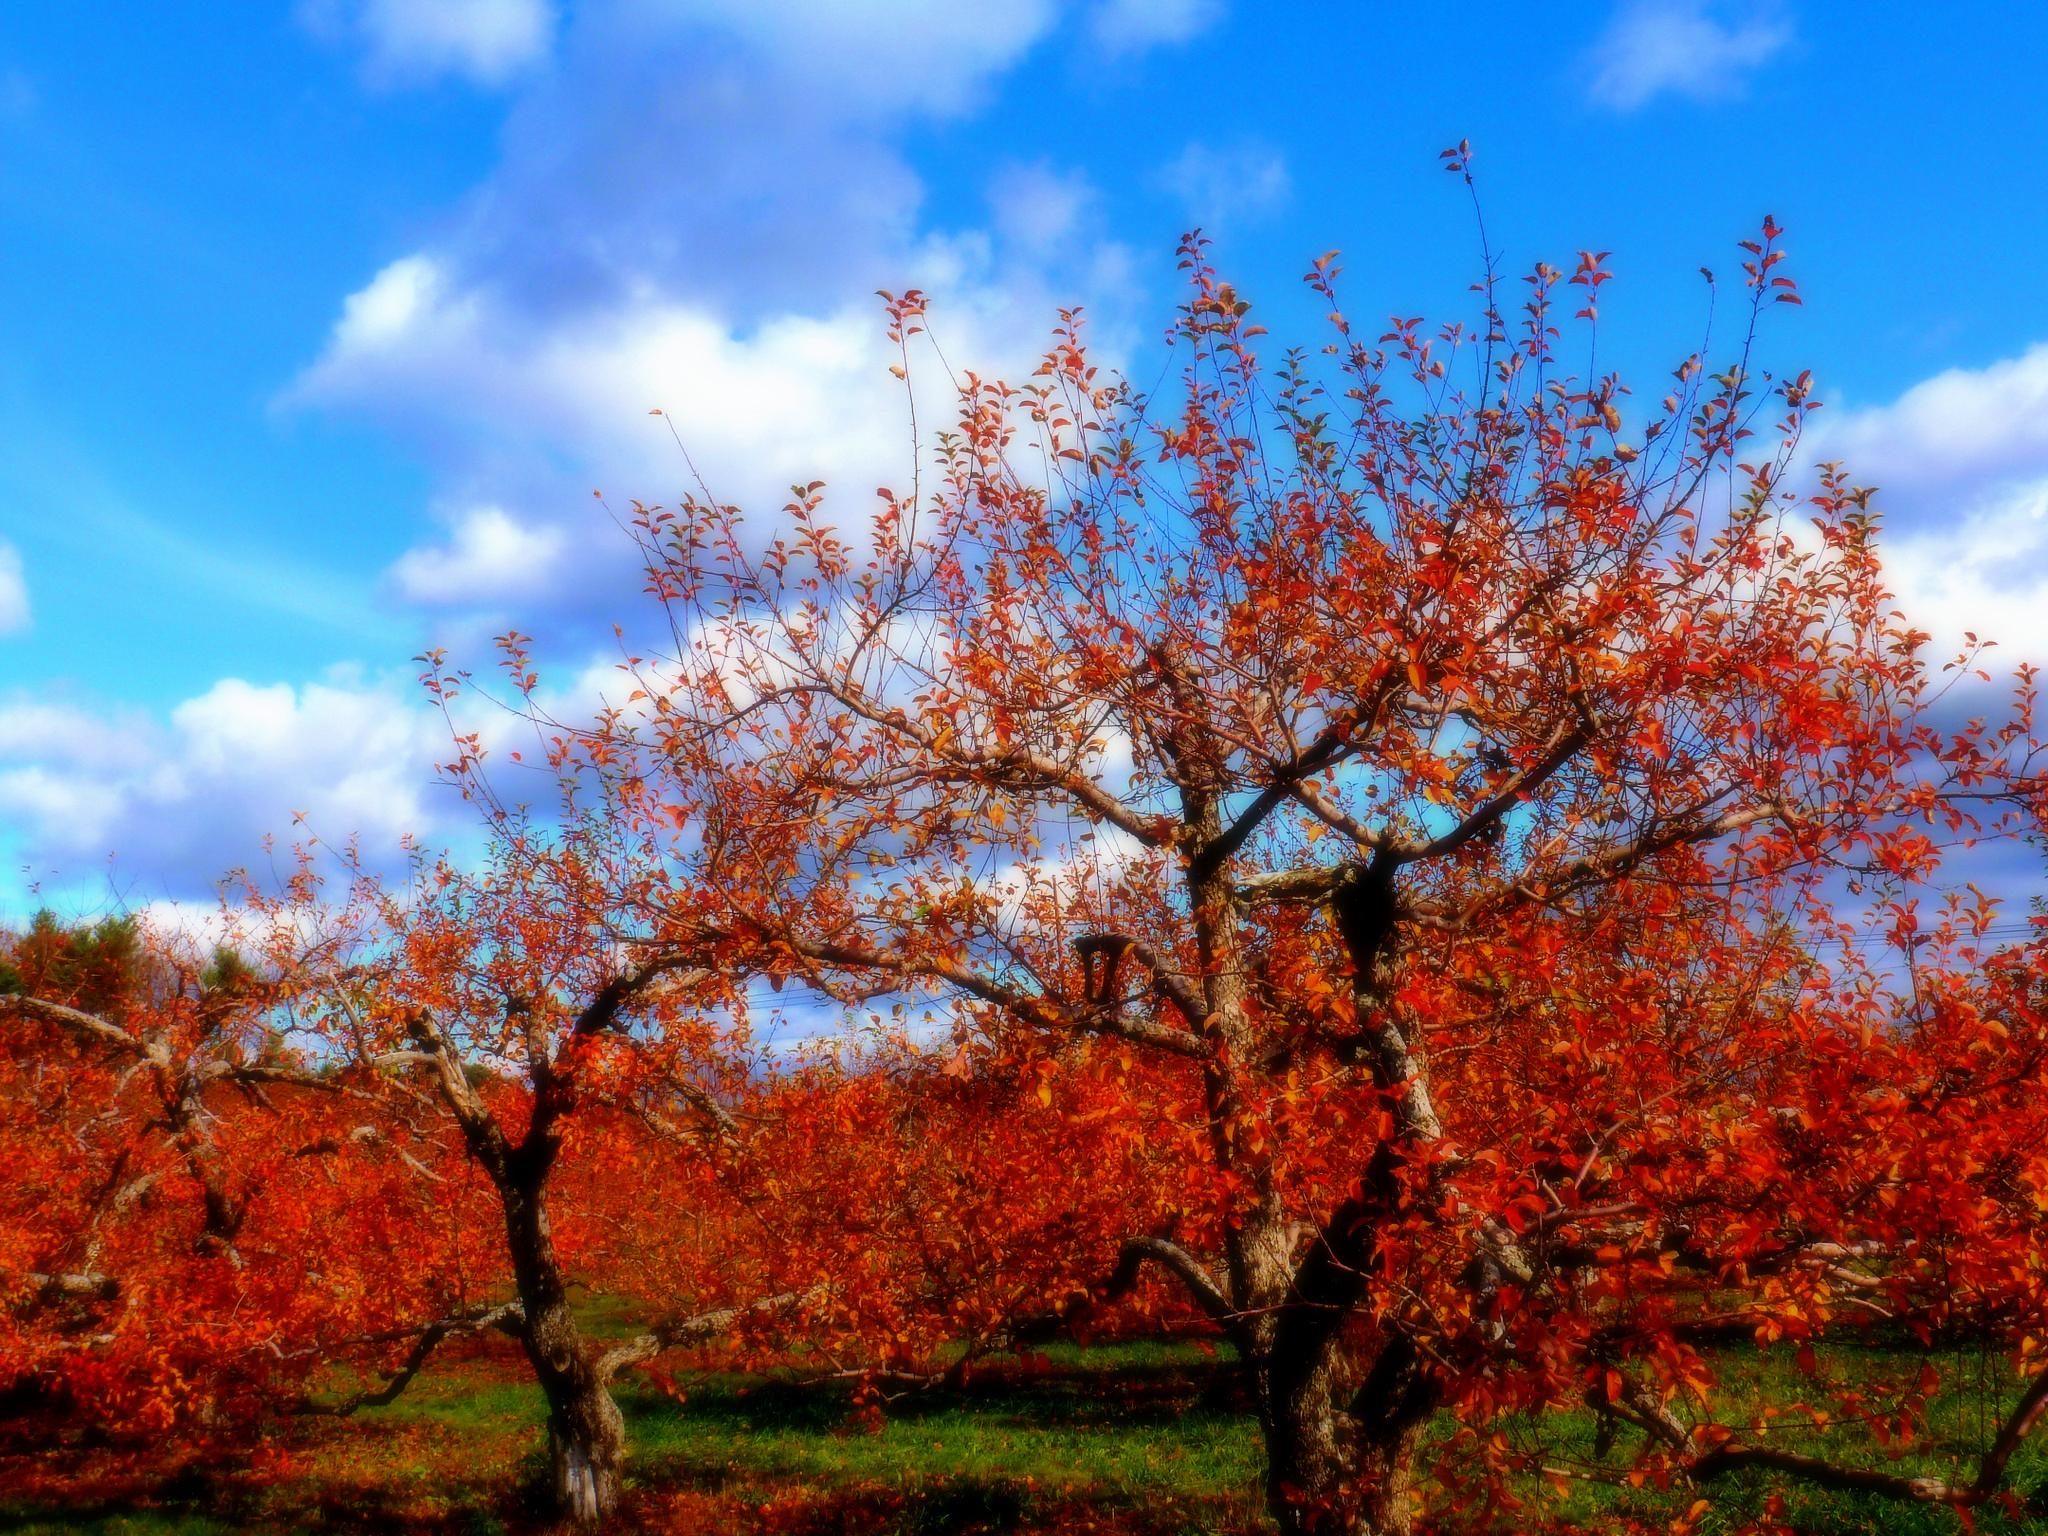 Autumn Orchard by paulette.king